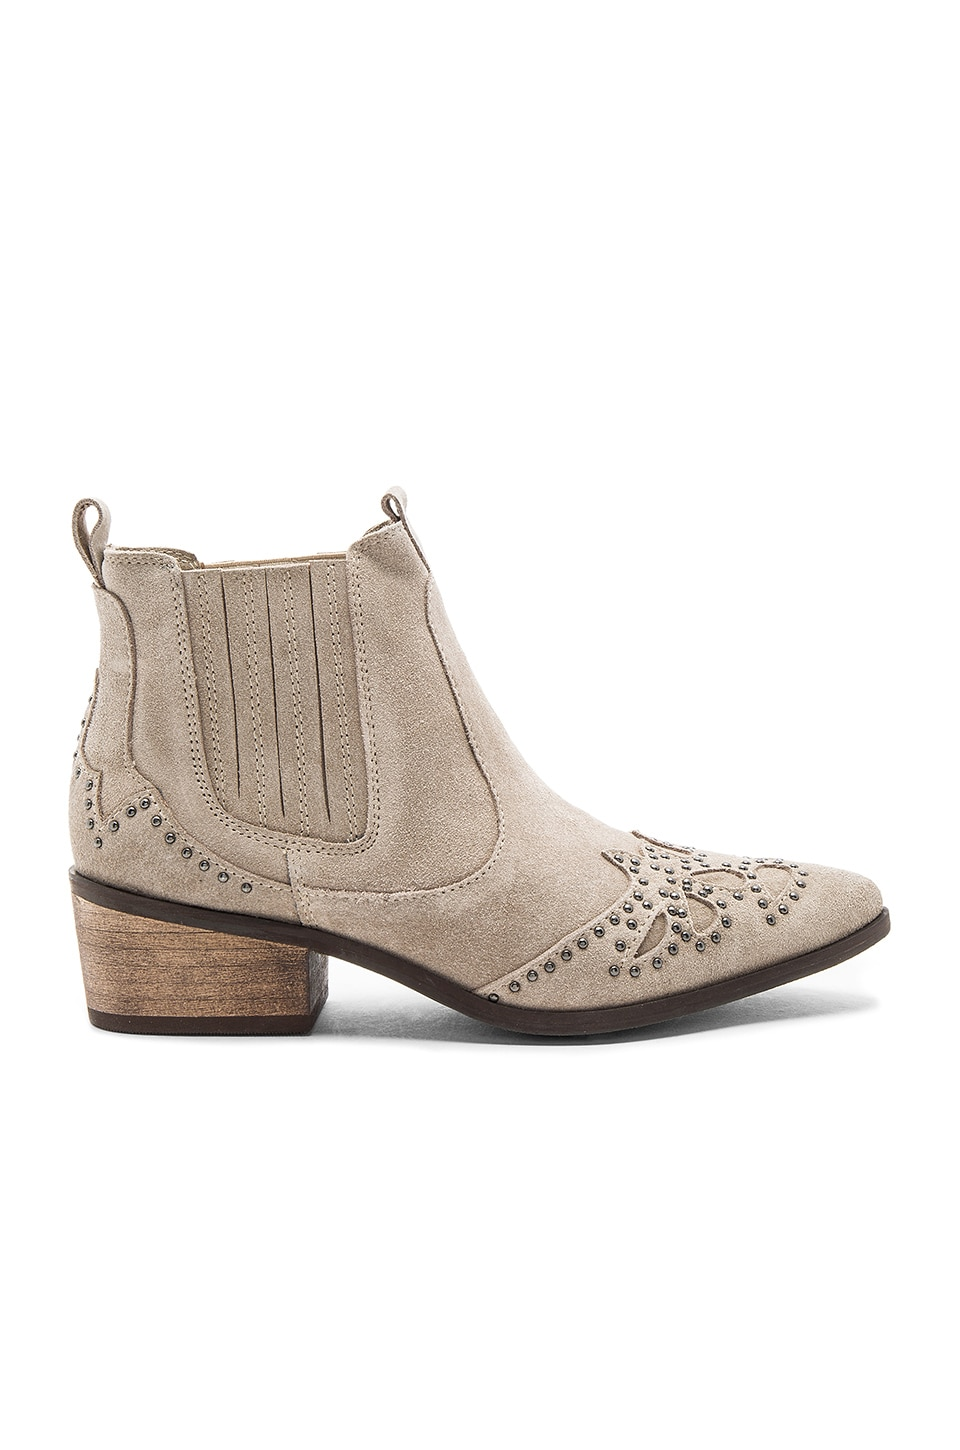 Matisse Backstage Booties in Taupe